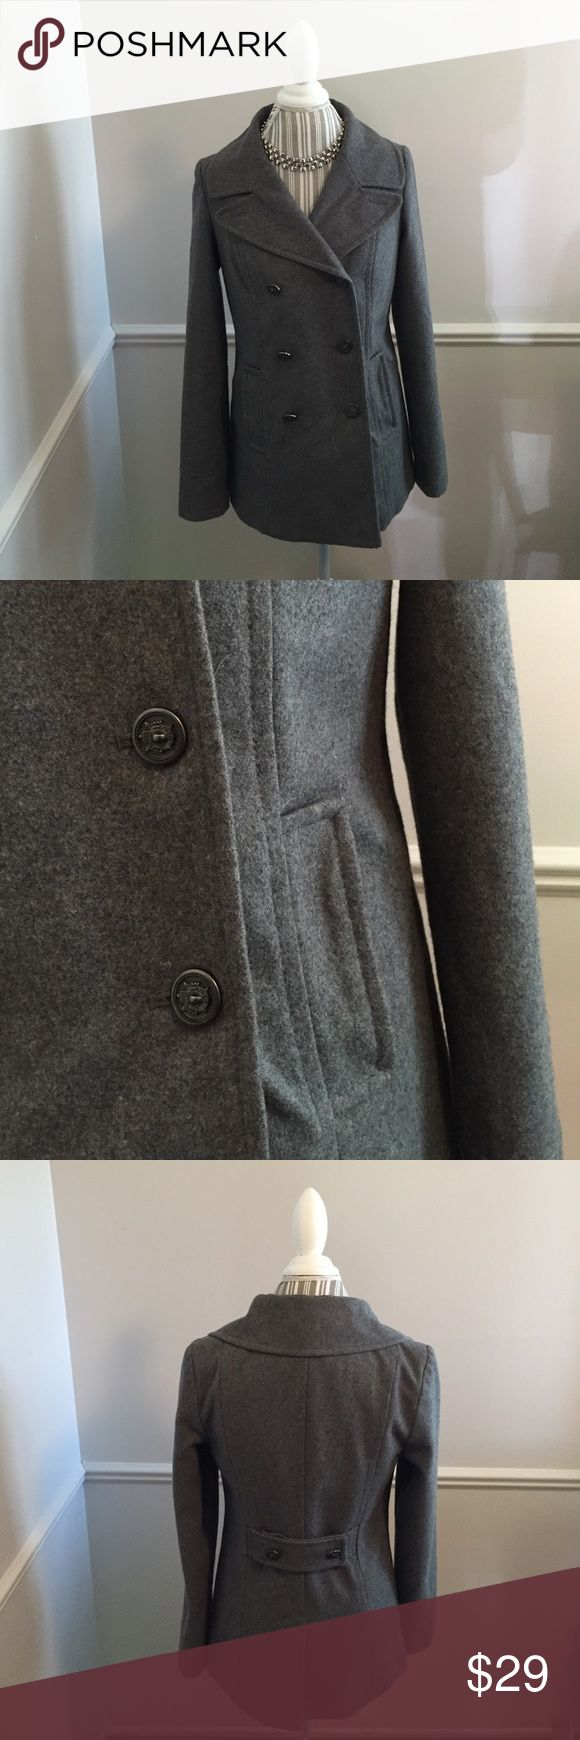 Old Navy Gray Pea Coat. Size S/P/P. Old Navy Gray Pea Coat. Size S/P/P. This coat features 6 front buttons and one inner button. 3 to close the coat and the one inner to assure no wind gets to you. The buttons are steel with a charcoal finish. There is a matching strip of fabric in the rear lower back of the coat with 2 matching buttons. Fall is right around the corner and this would be perfect for those cool days not to mention this goes great with business attire. Old Navy Jackets & Coats…